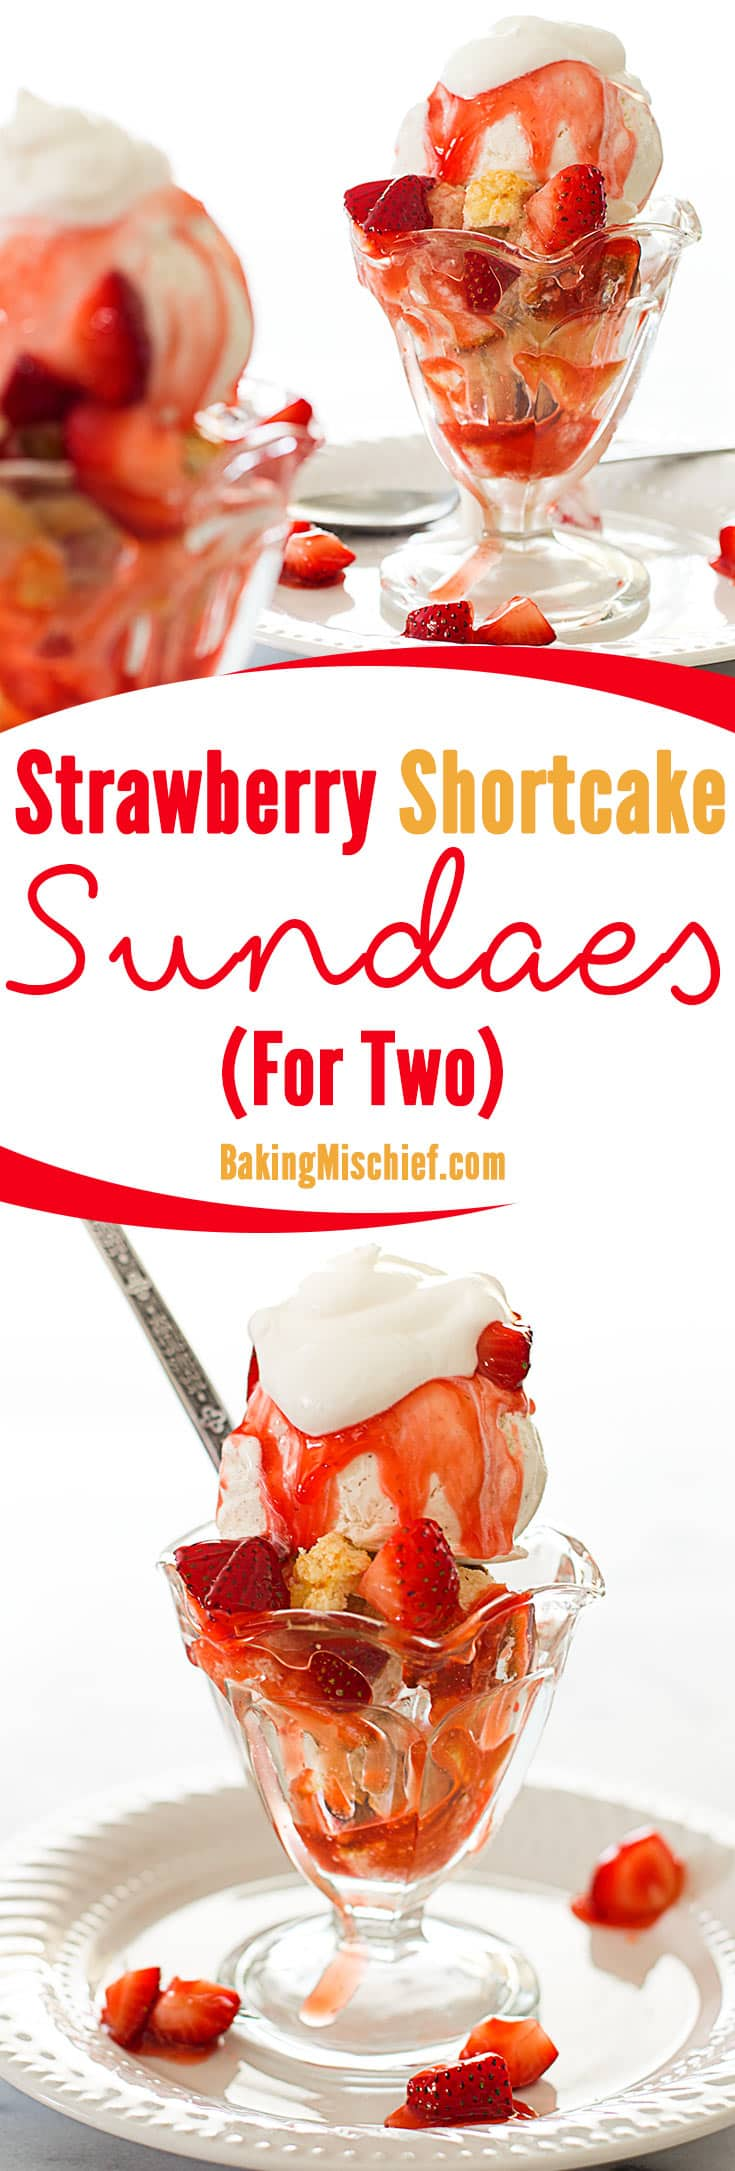 how to make strawberry shortcake topping